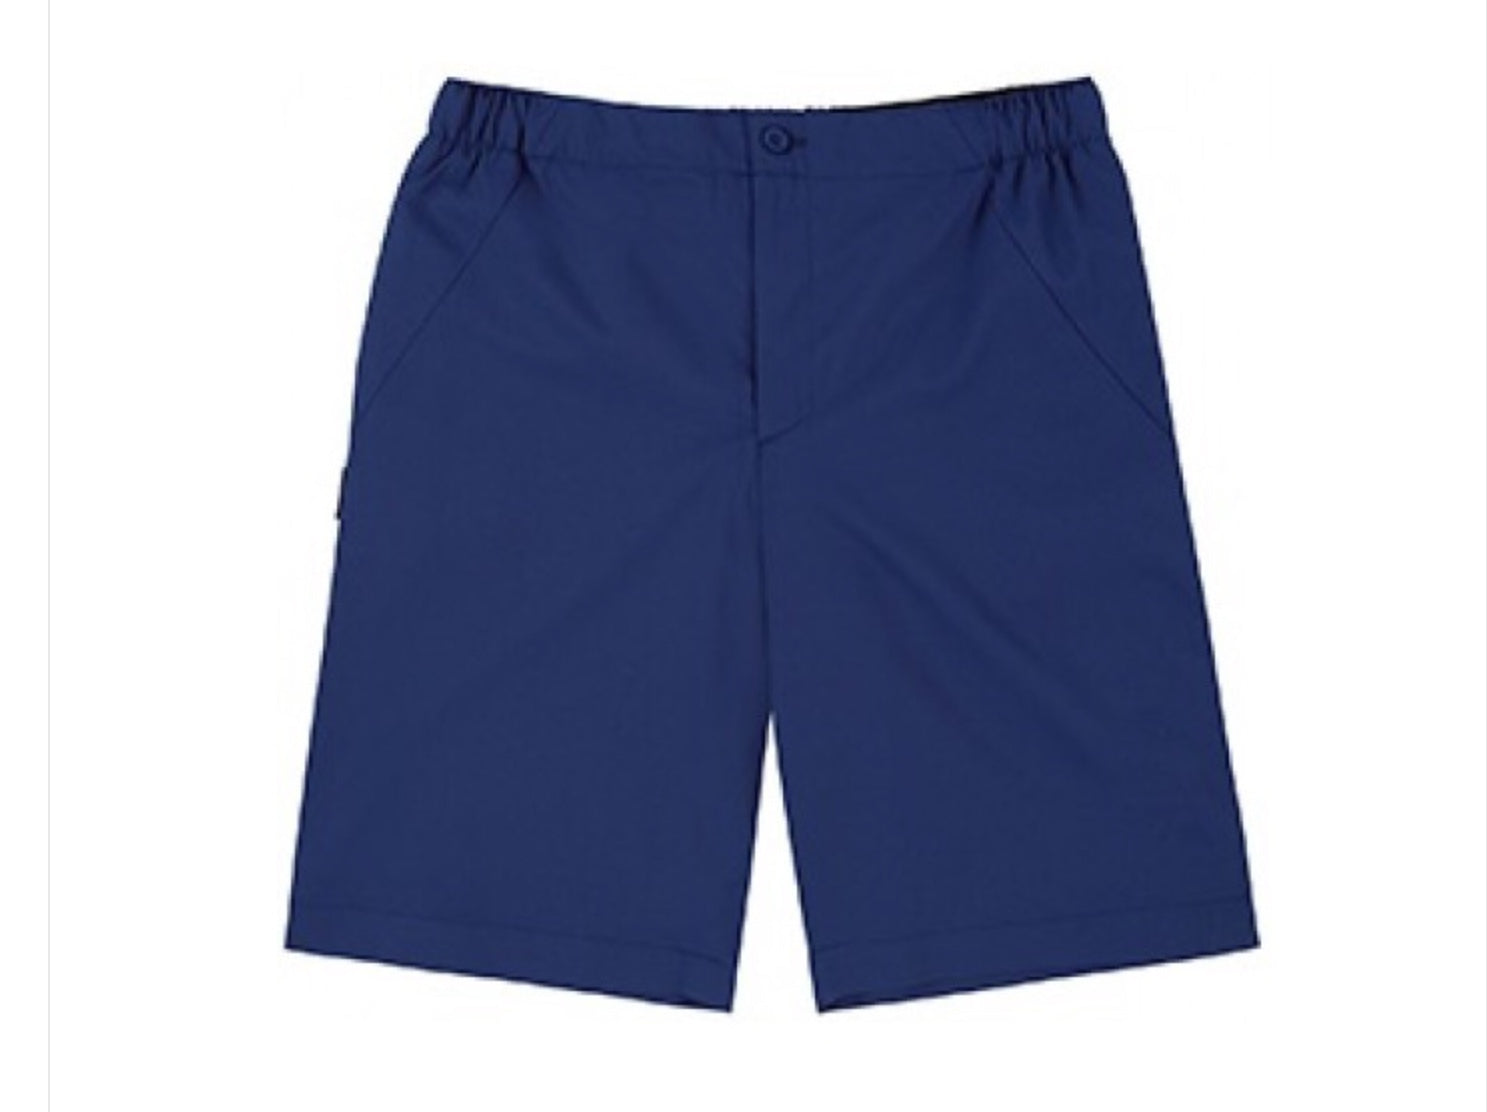 City Club Jack Flash Lawn Bowls Shorts